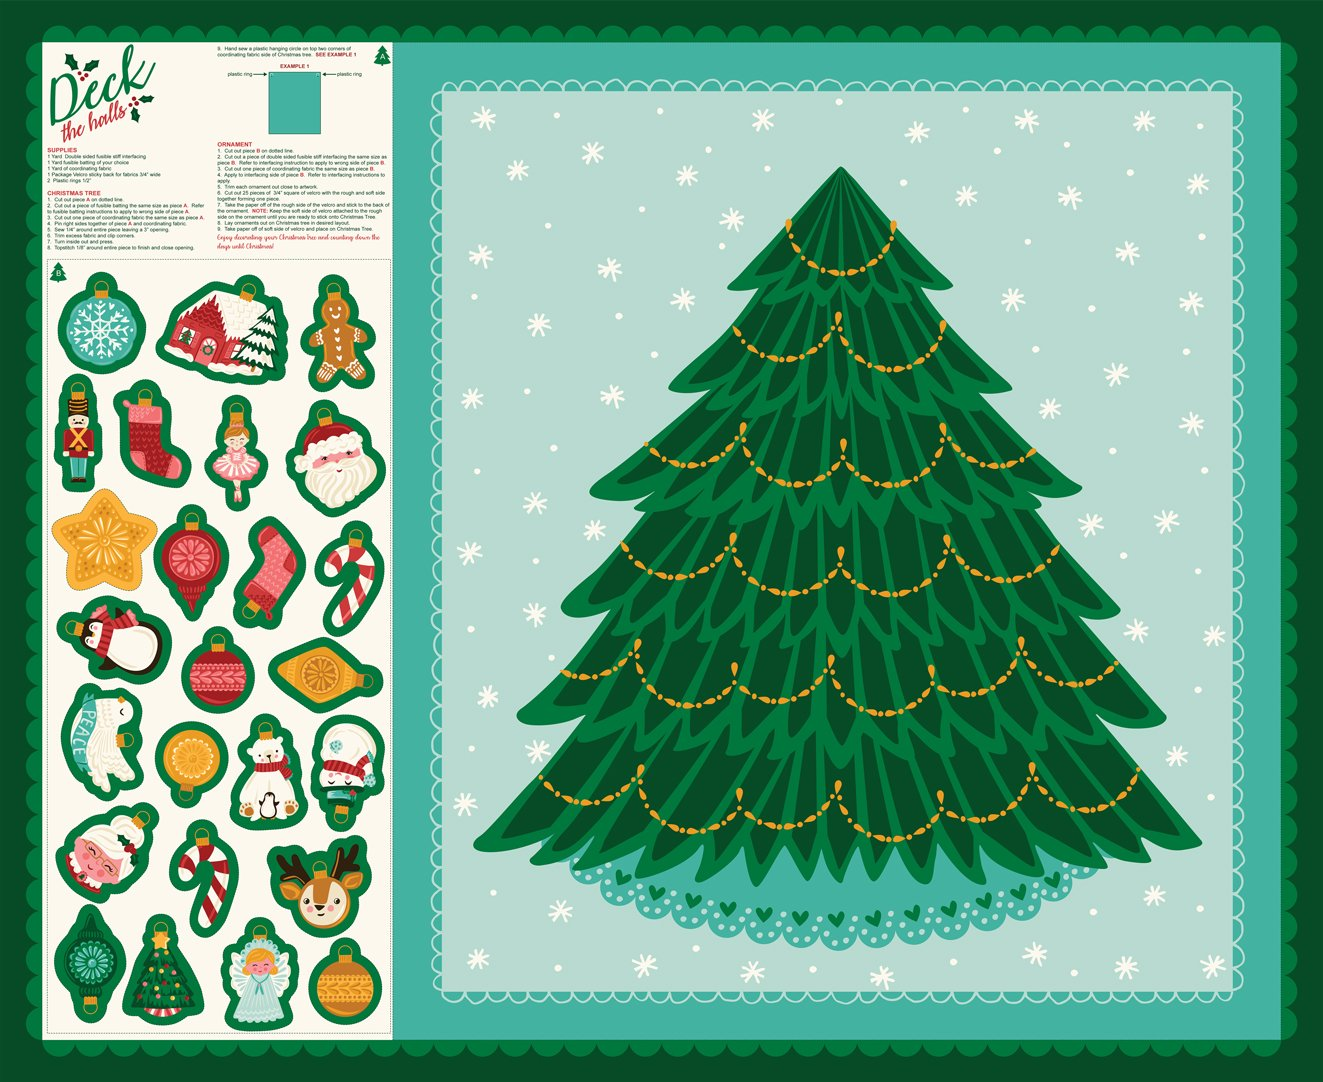 Deck the Halls - Cut & Sew Christmas Tree Panel